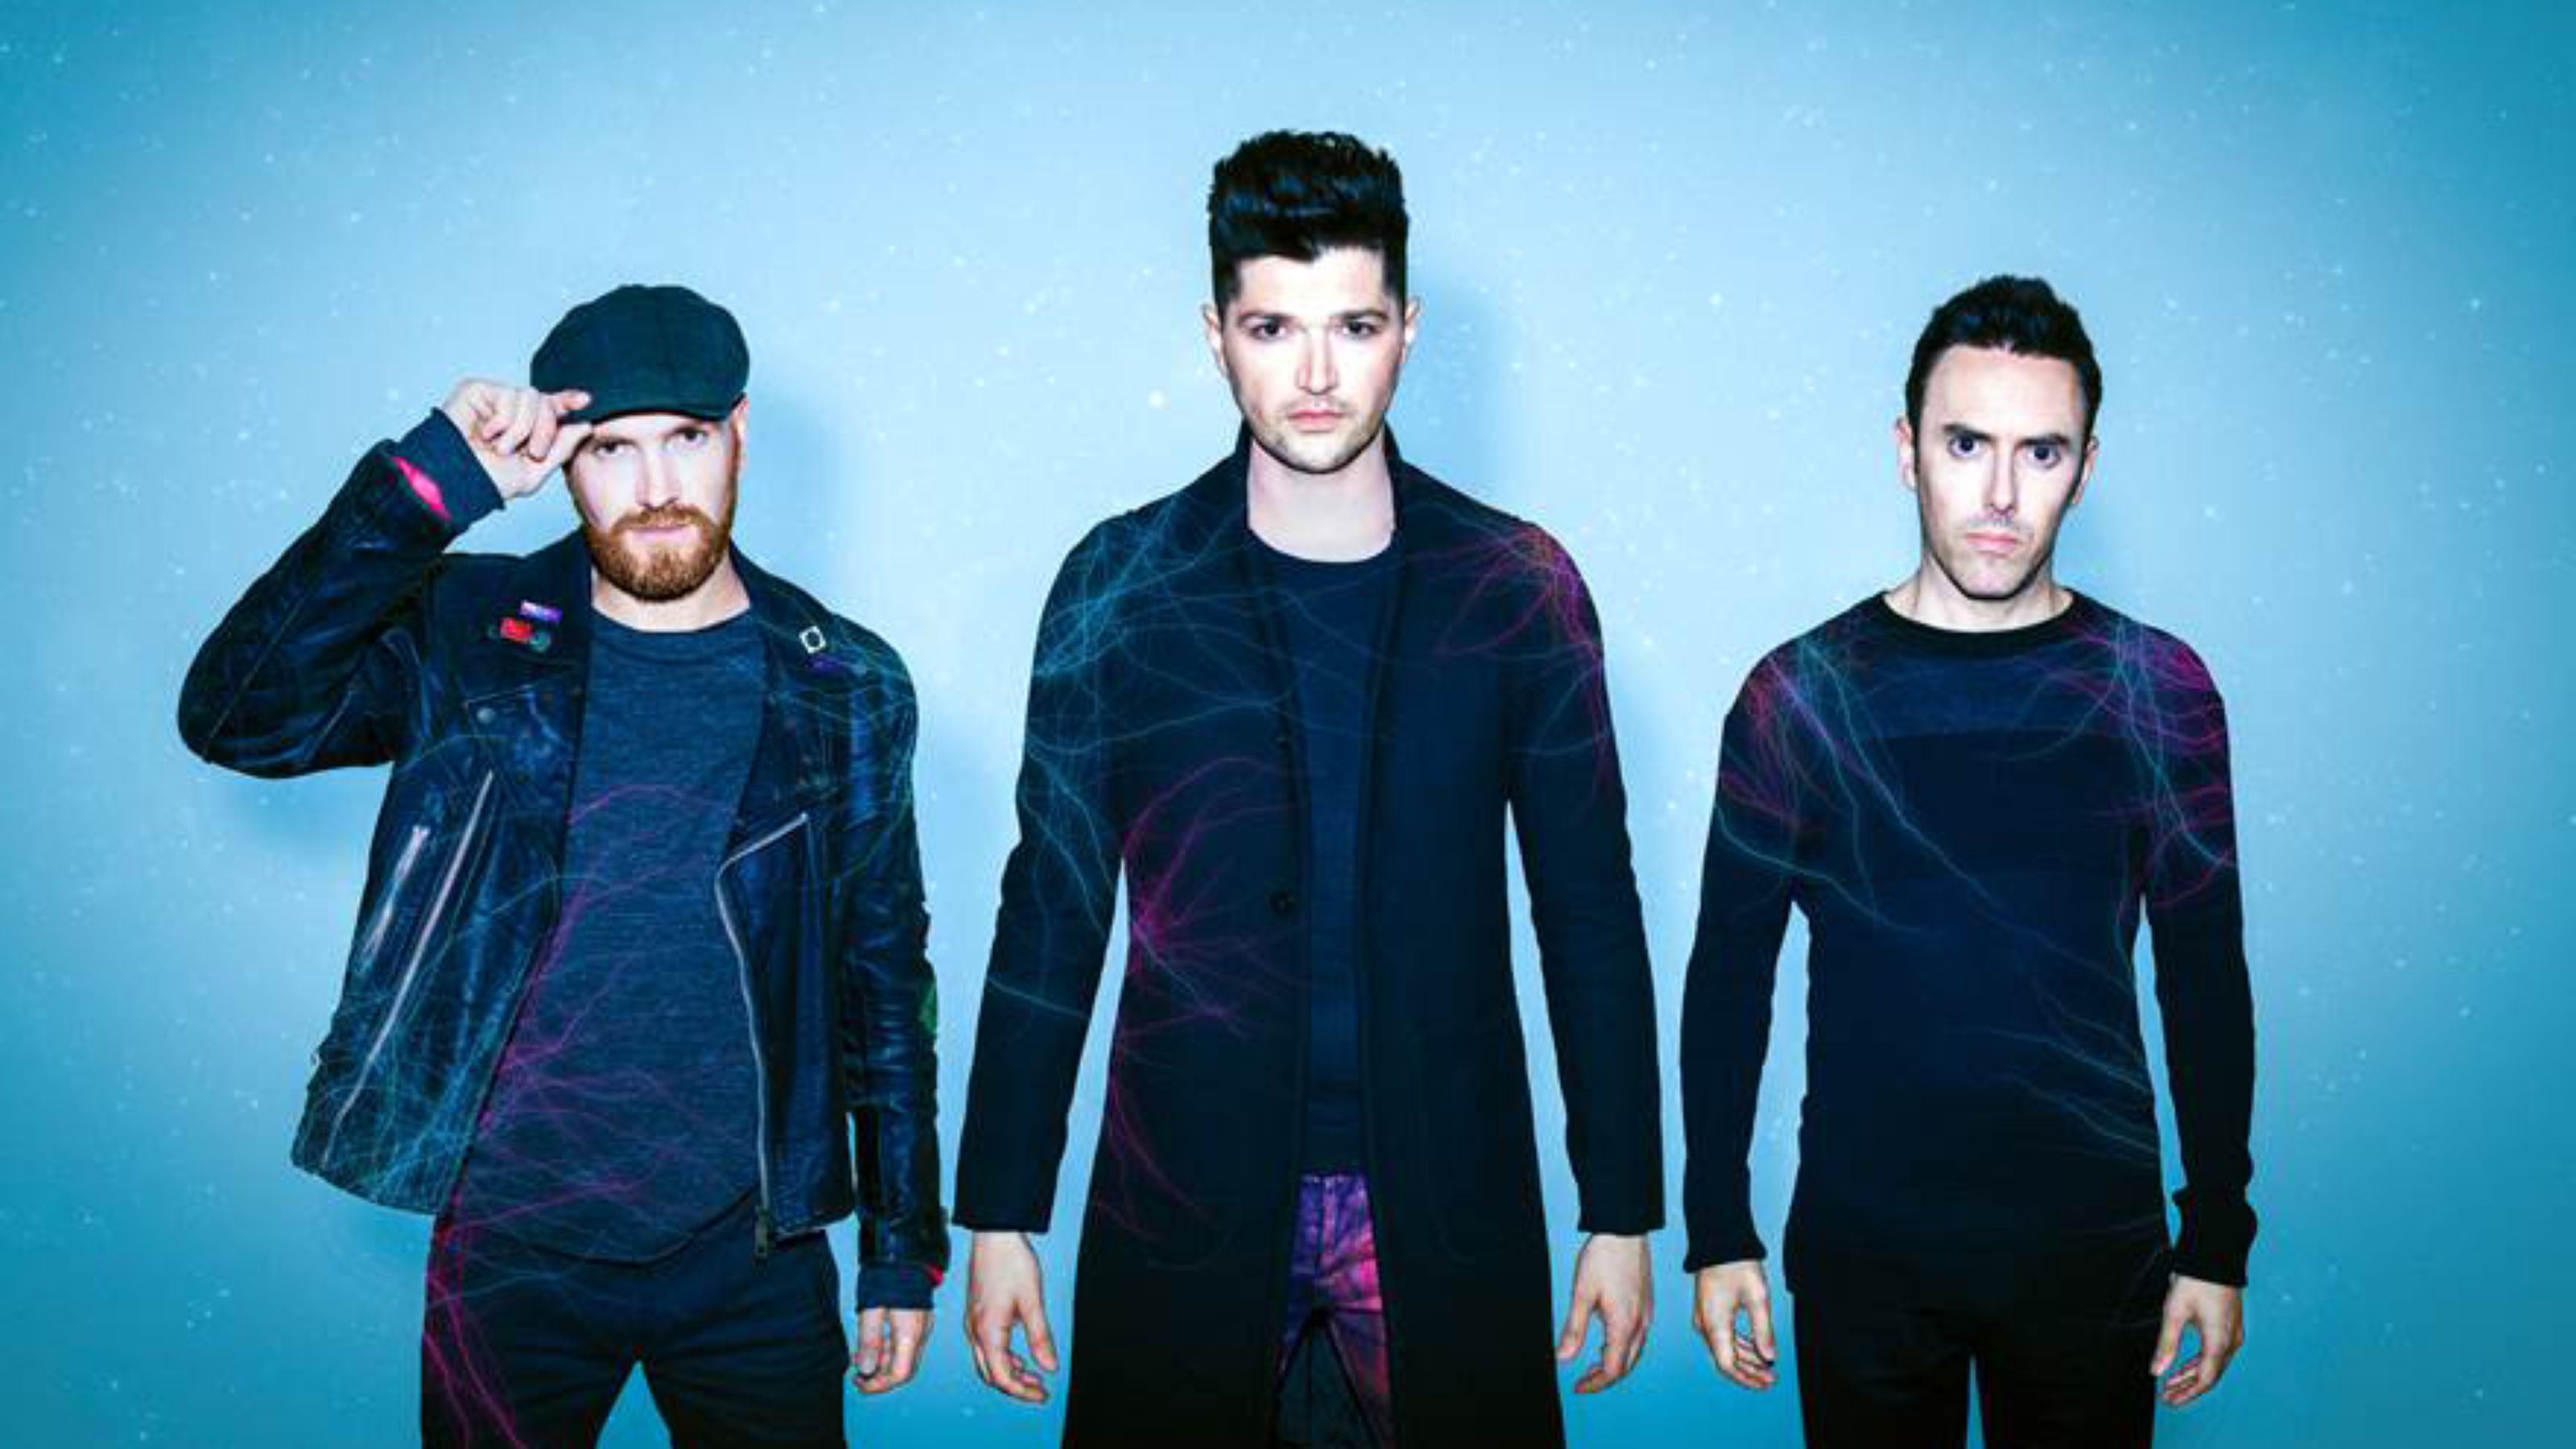 The Script (from left to right): Mark Sheehan, Danny O'Donoghue, Glen Power